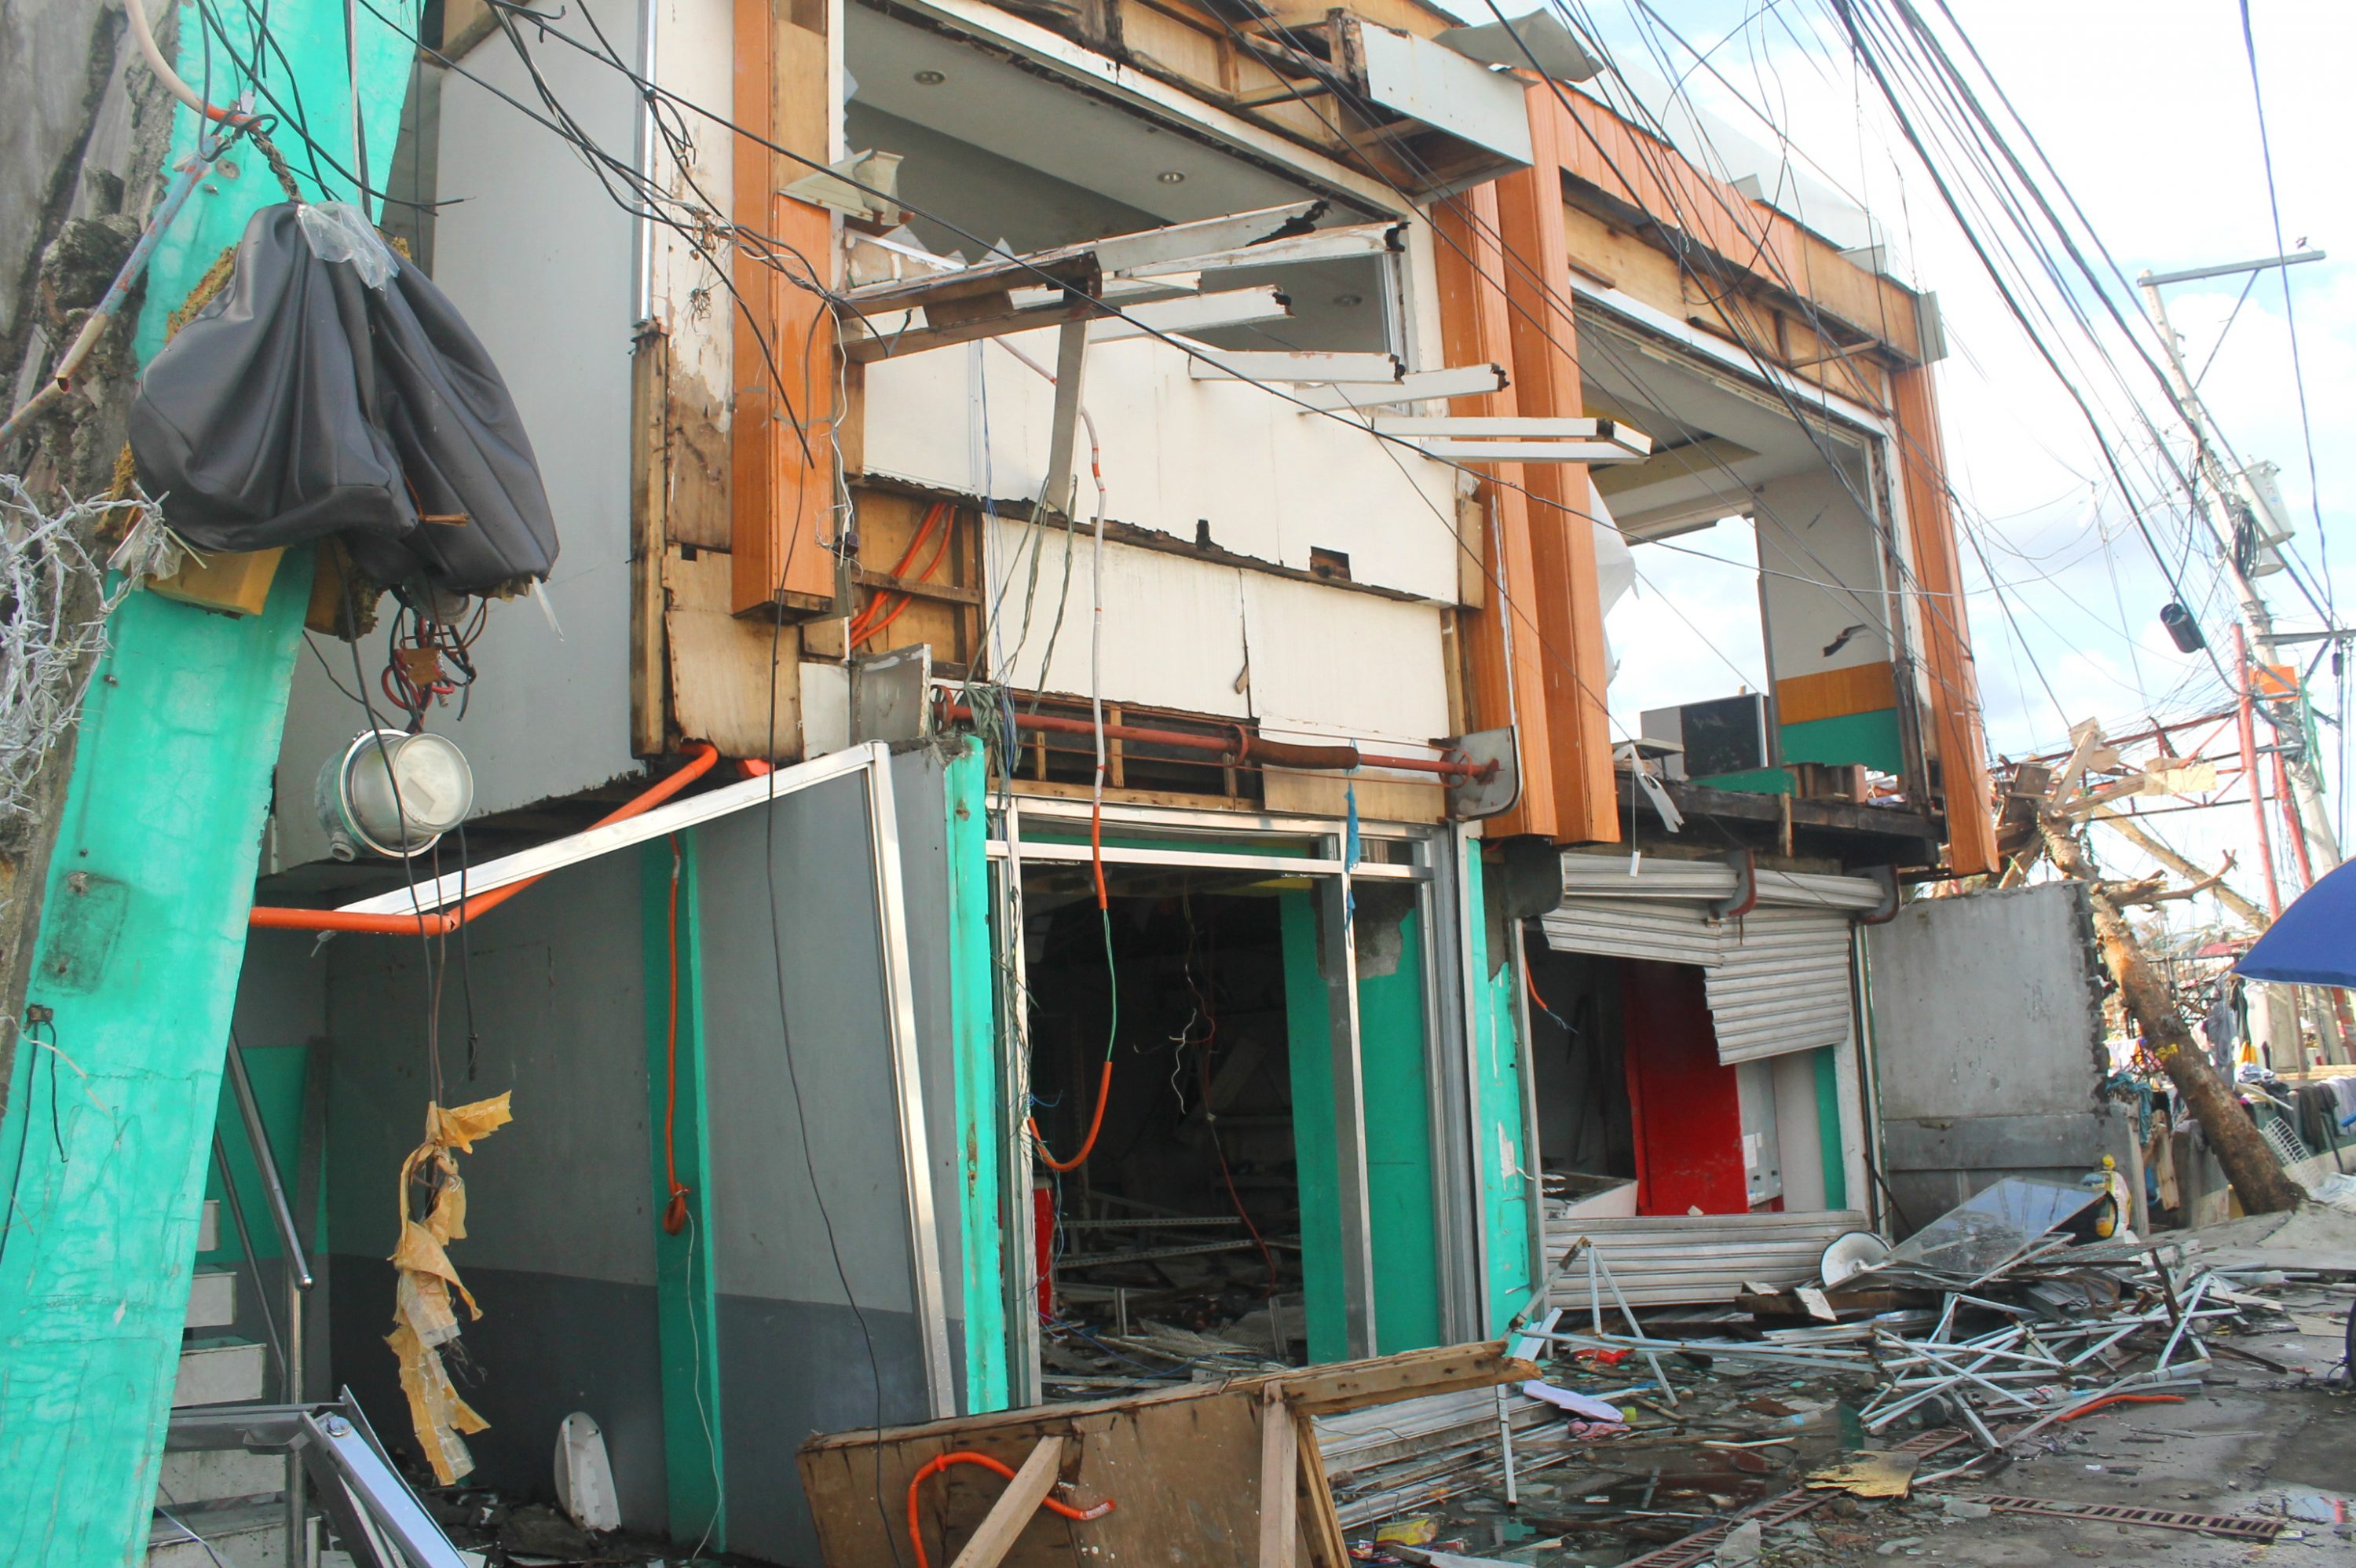 Photograph Image Of A Shop Flooded During The Supertyphoon Haiyan (Yolanda) In Tacloban City, Philippines.